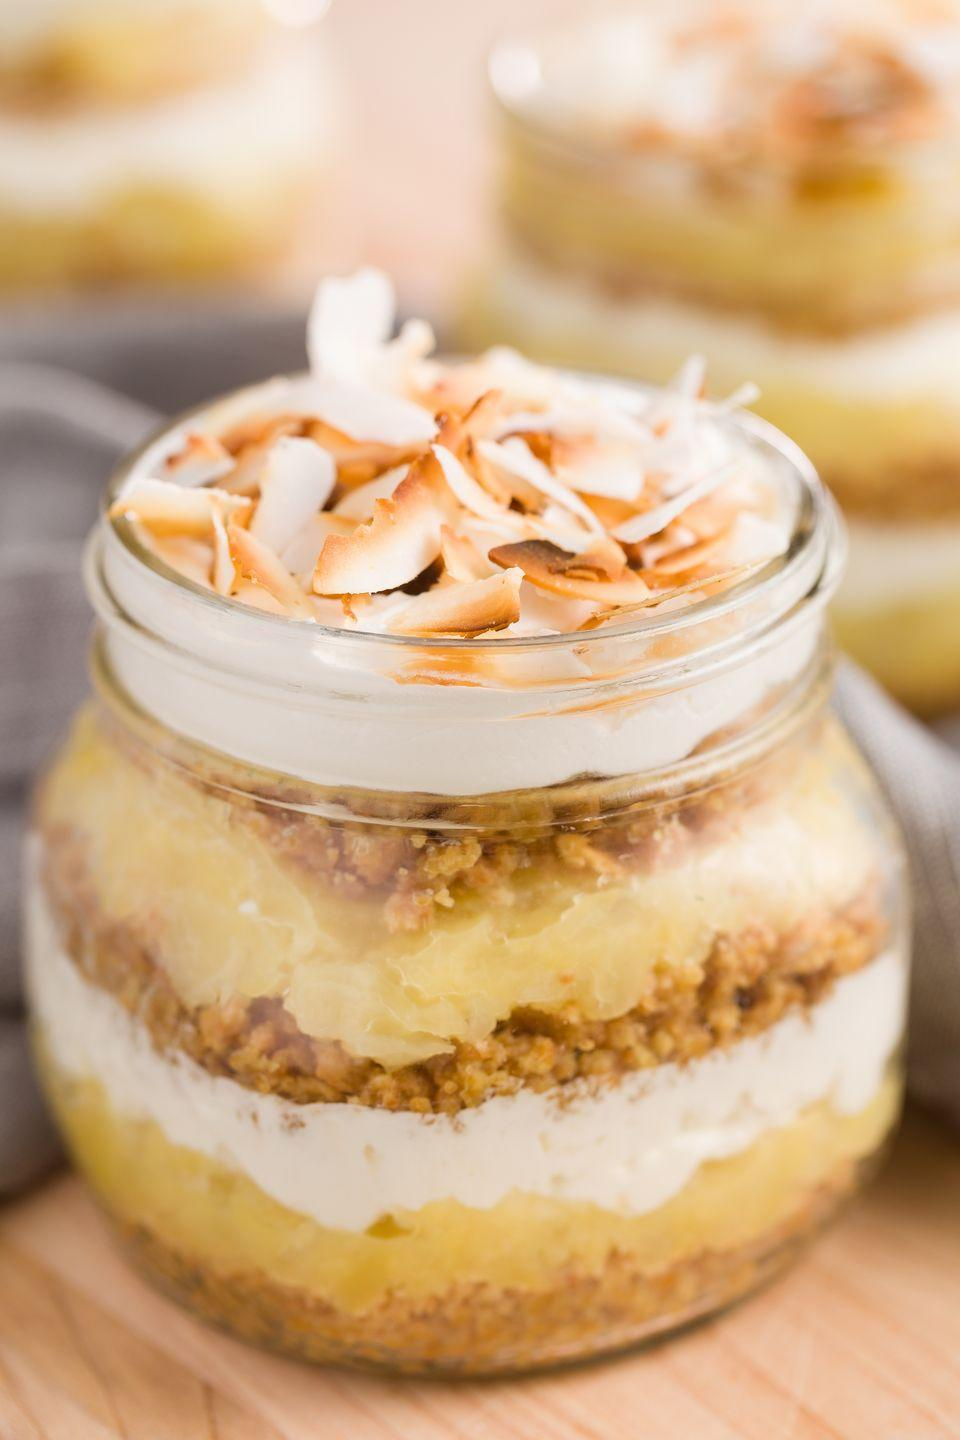 """<p>Cool down—while transporting to the tropics—with layers of buttery graham cracker crust, pineapple, and whipped cream cheese. </p><p>Get the recipe from <a href=""""https://www.delish.com/cooking/recipe-ideas/recipes/a43552/pina-colada-pie-in-a-jar-recipe/"""" rel=""""nofollow noopener"""" target=""""_blank"""" data-ylk=""""slk:Delish"""" class=""""link rapid-noclick-resp"""">Delish</a>.</p>"""